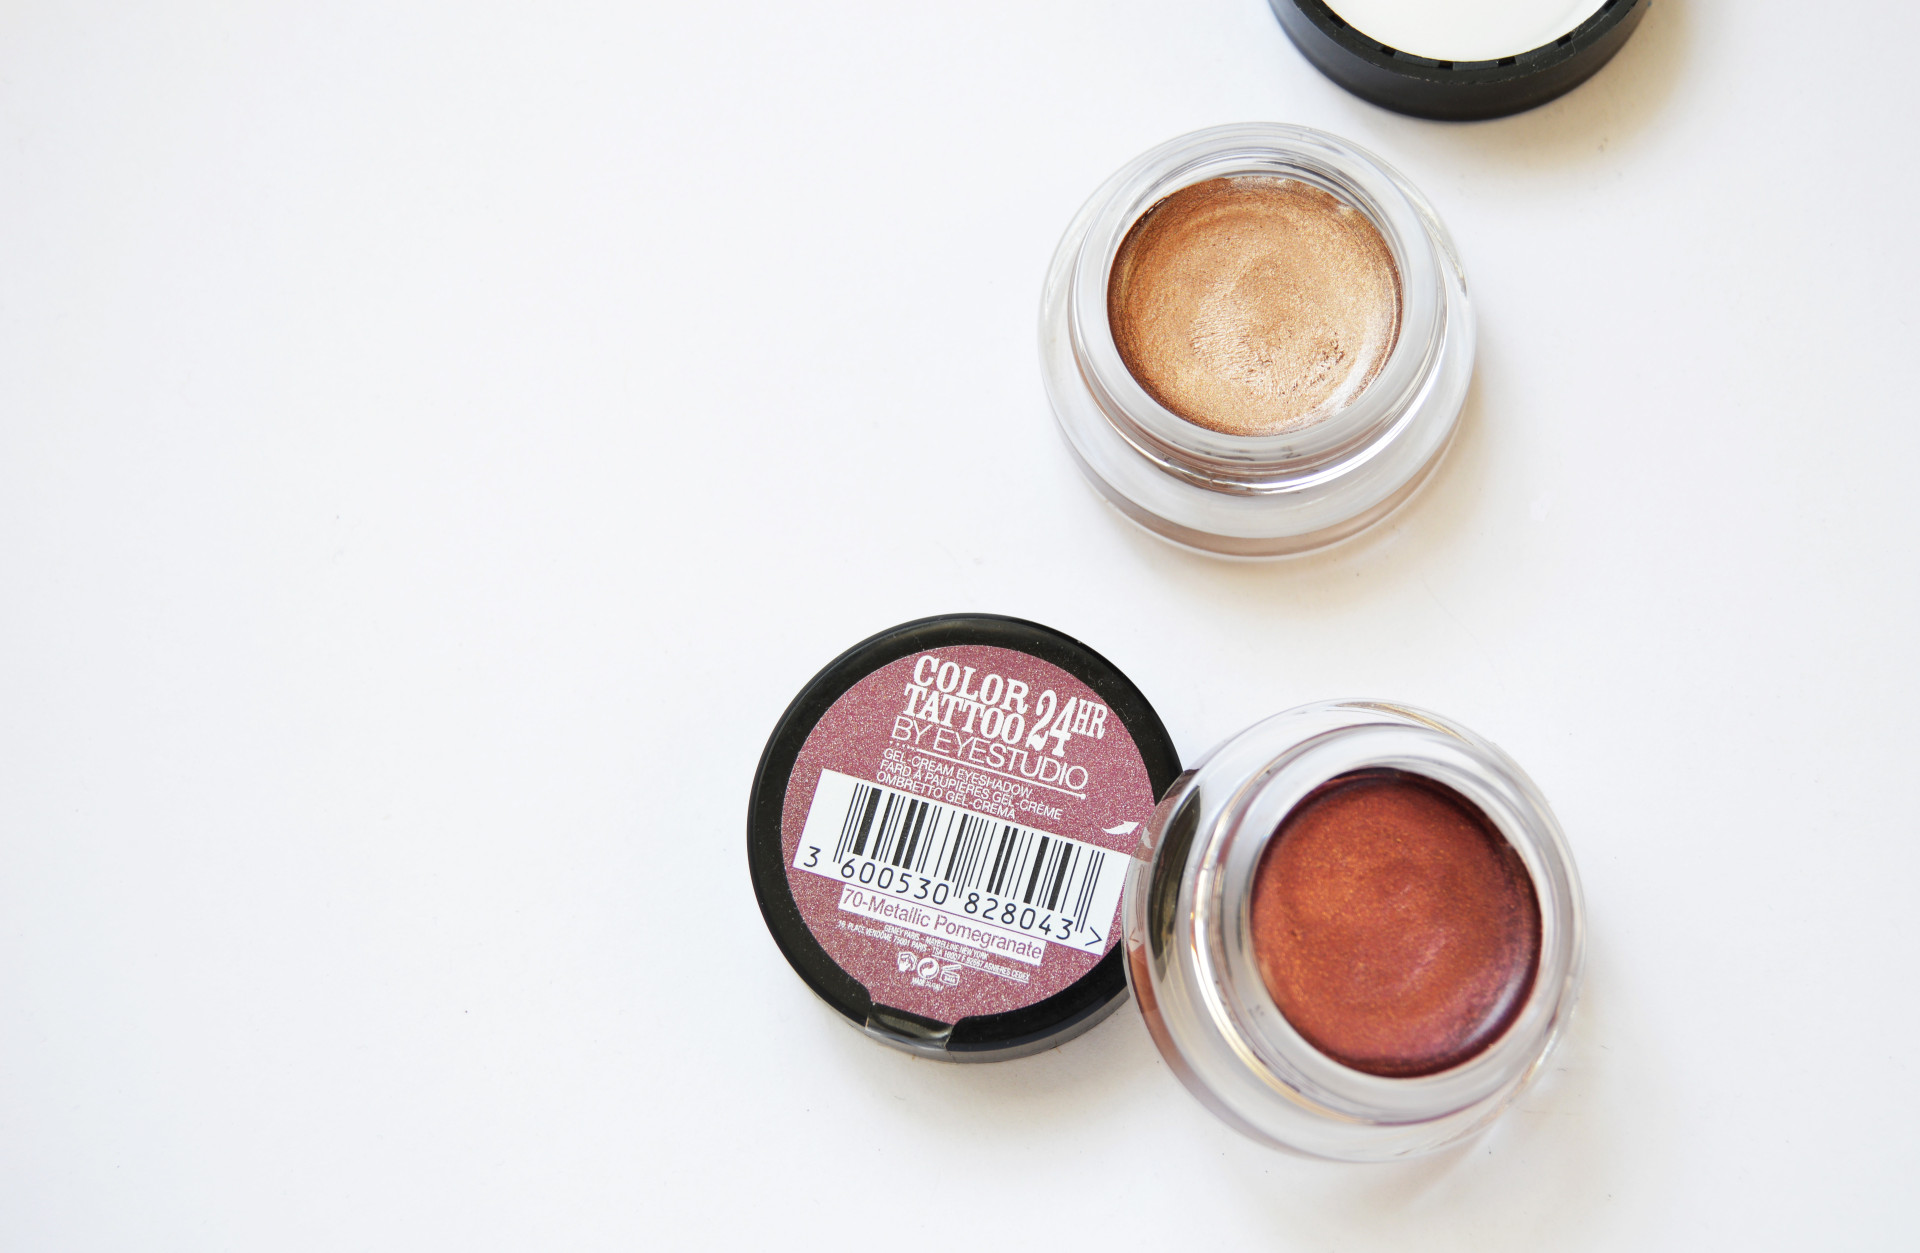 Maybelline Color Tattoo 24 HR eye shadows review and swatches